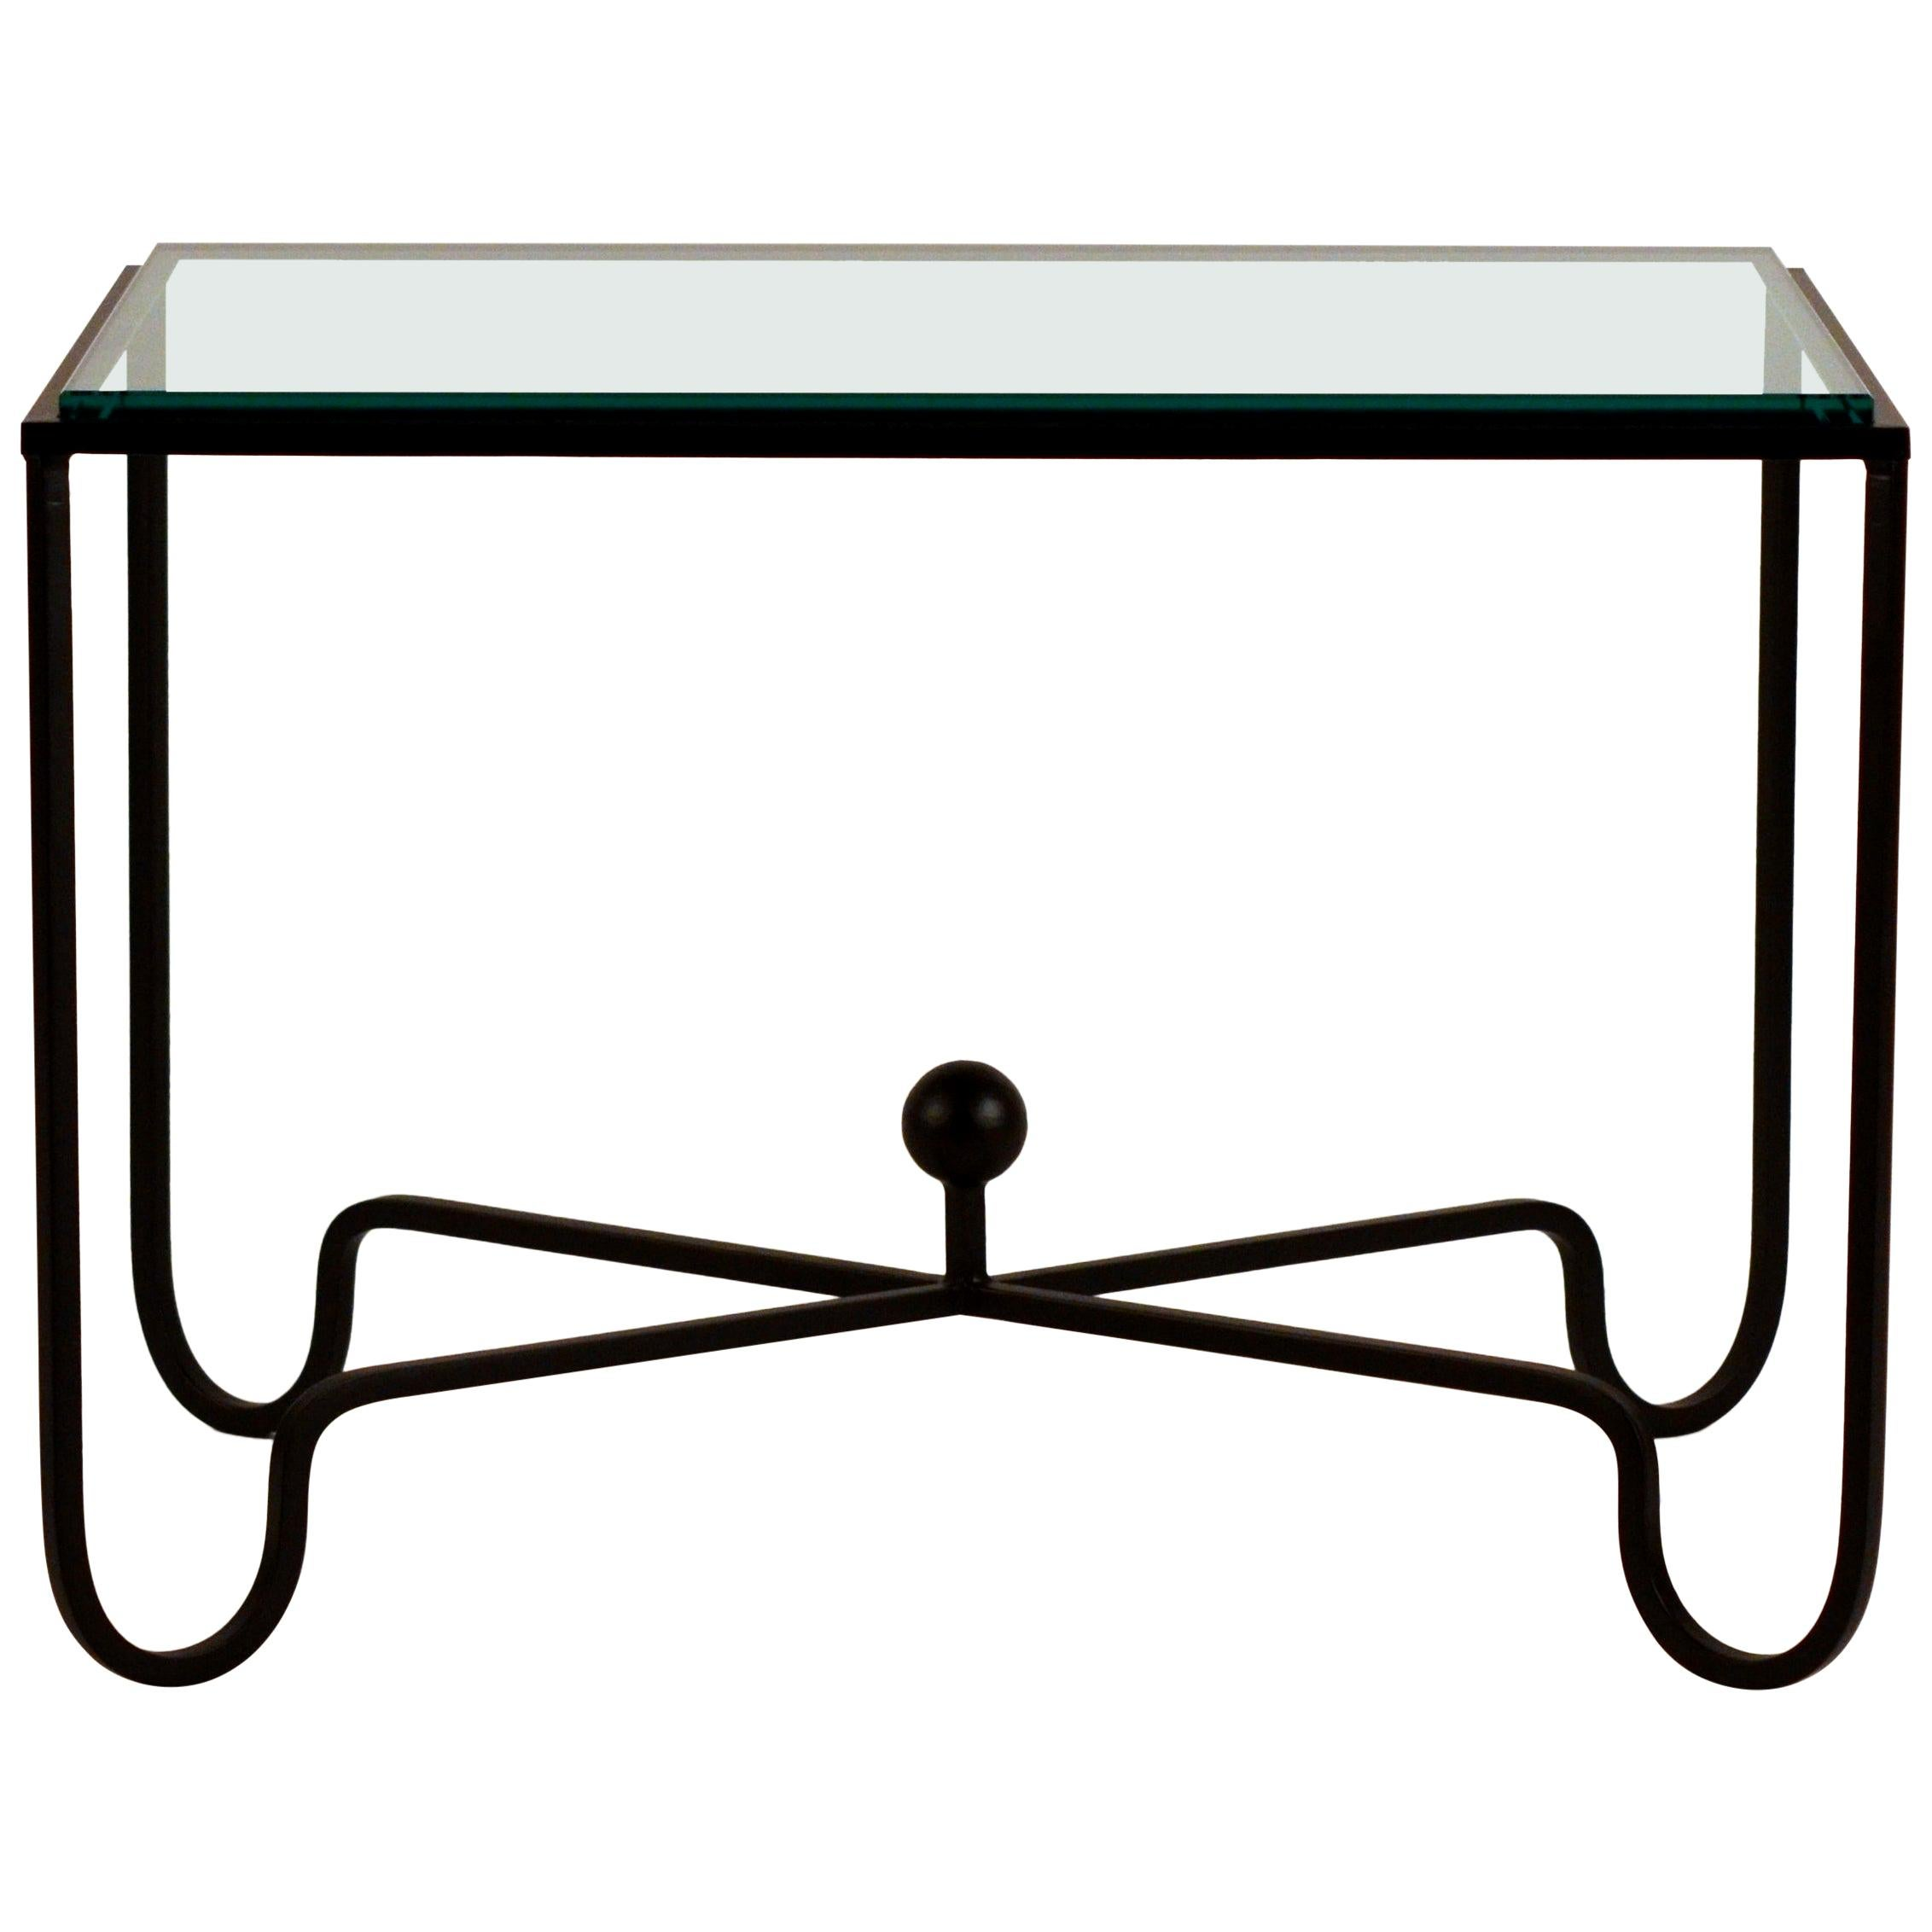 Chic Blackened Steel and Glass 'Entretoise' Side Table by Design Frères